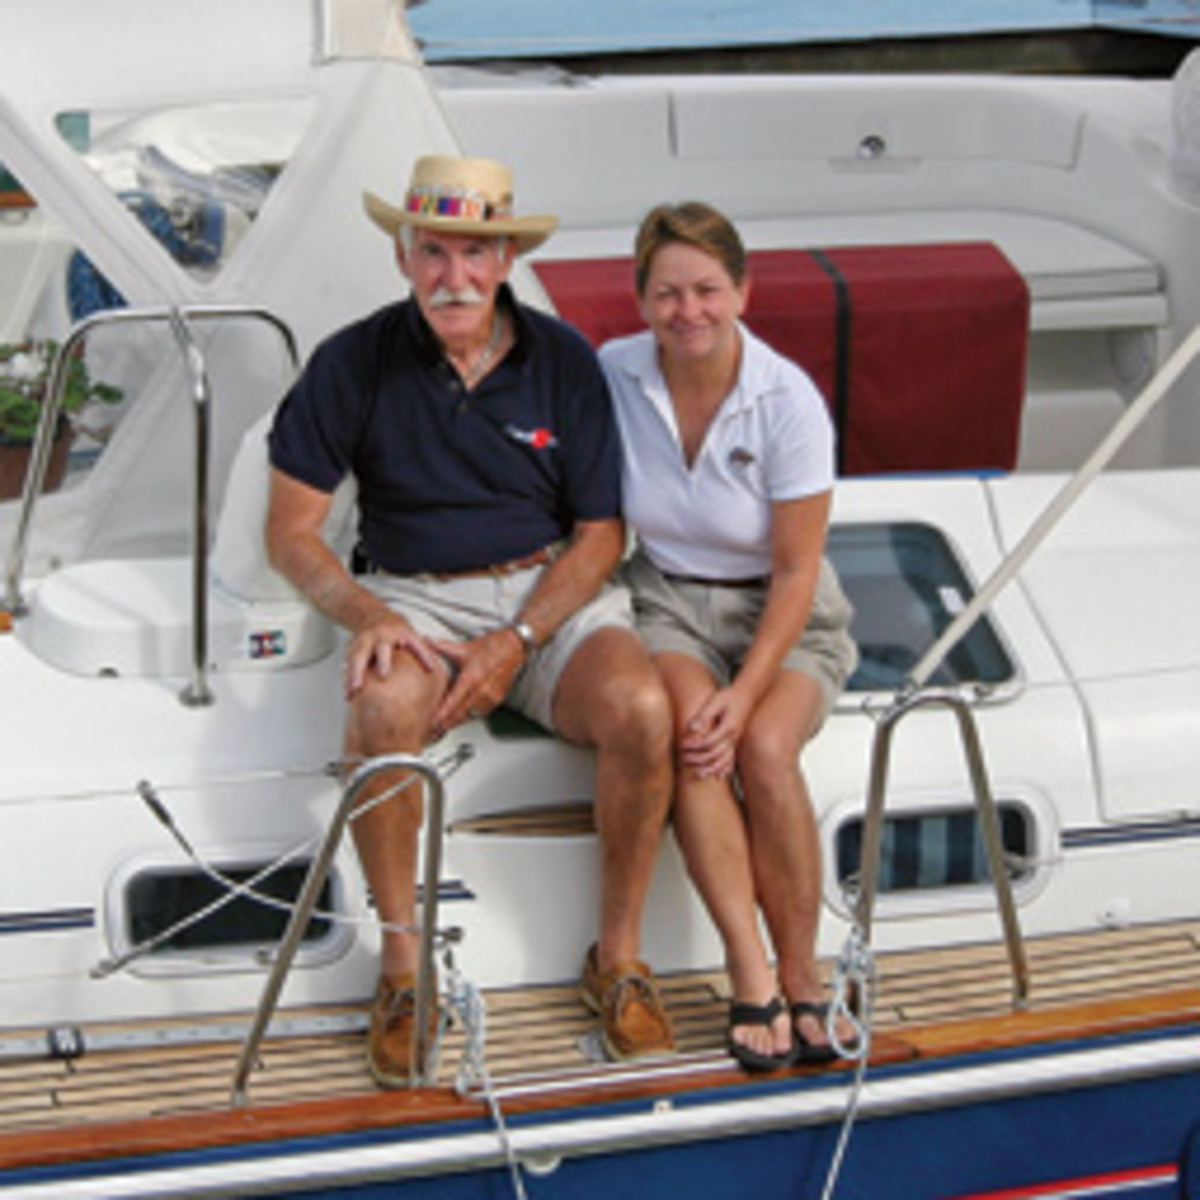 Capt. Harry and Grace, a team on and off the water, are awaiting their next adventure.